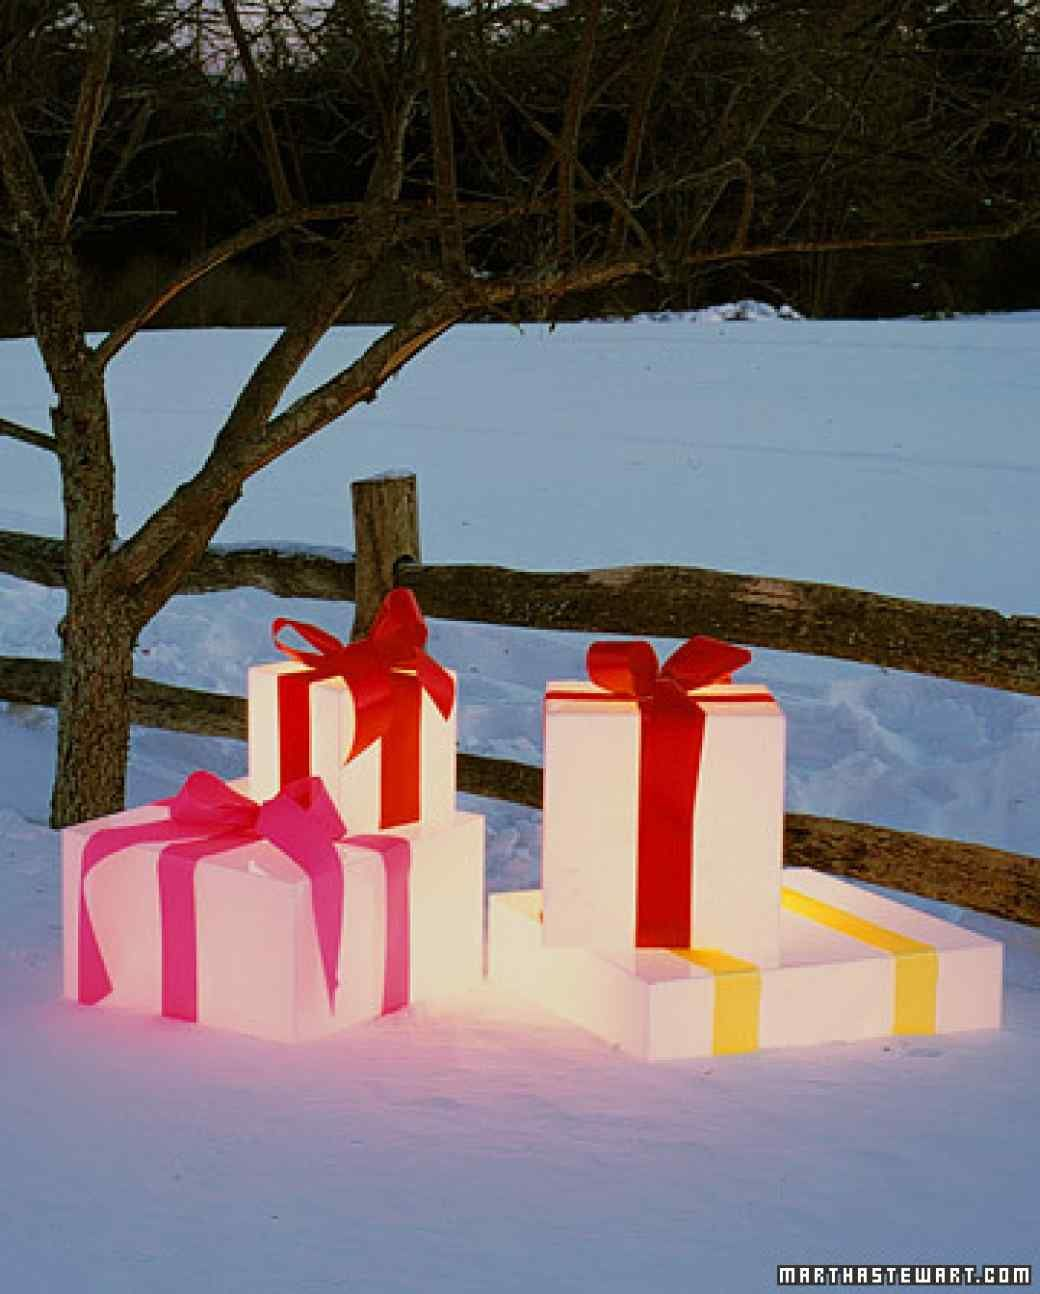 Make your own outdoor christmas decorations - Make Your Own Outdoor Christmas Decorations 28